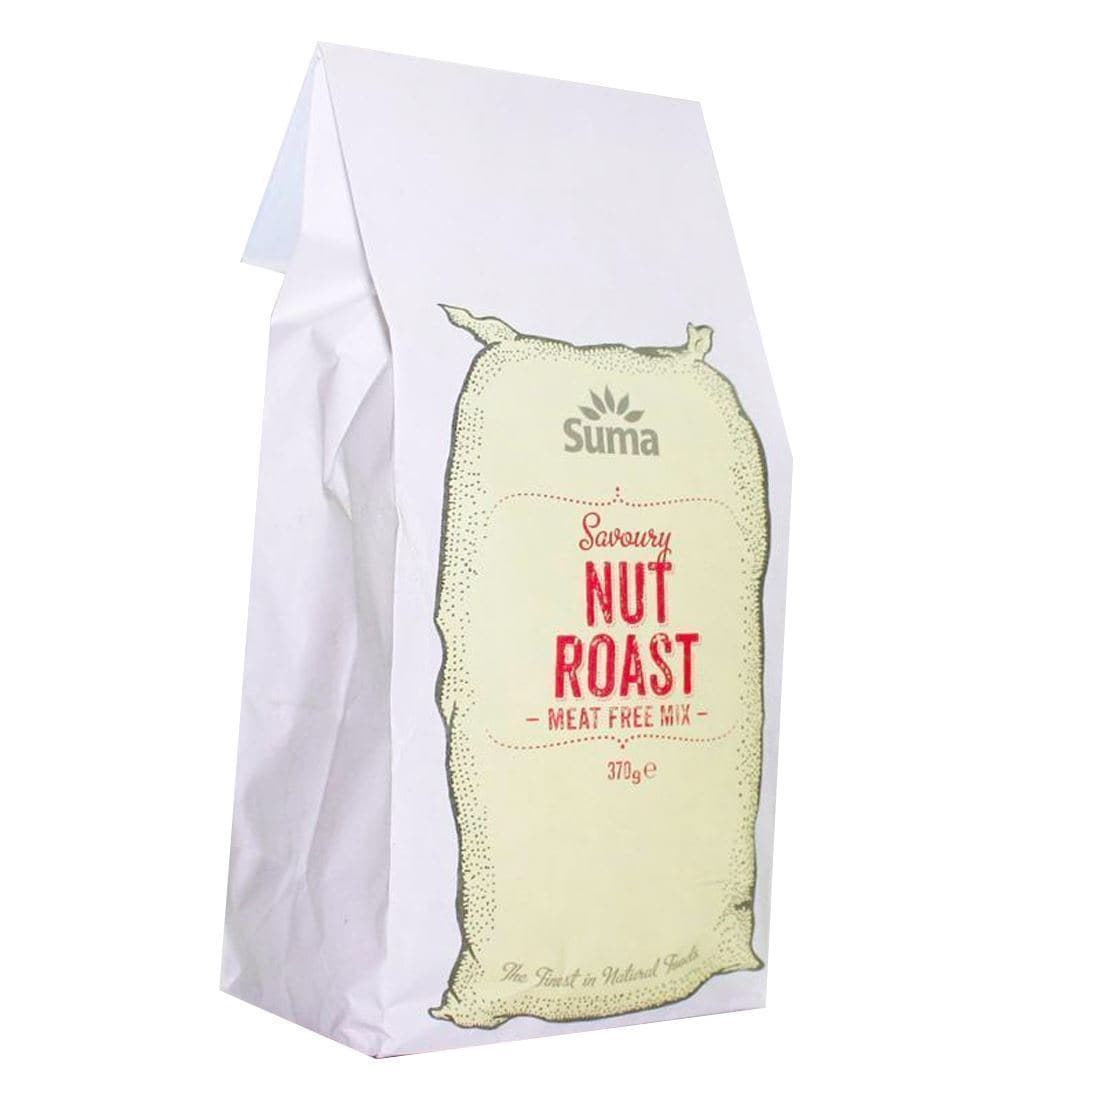 Suma Nut Roast Mix Savoury/Vegan - 370g